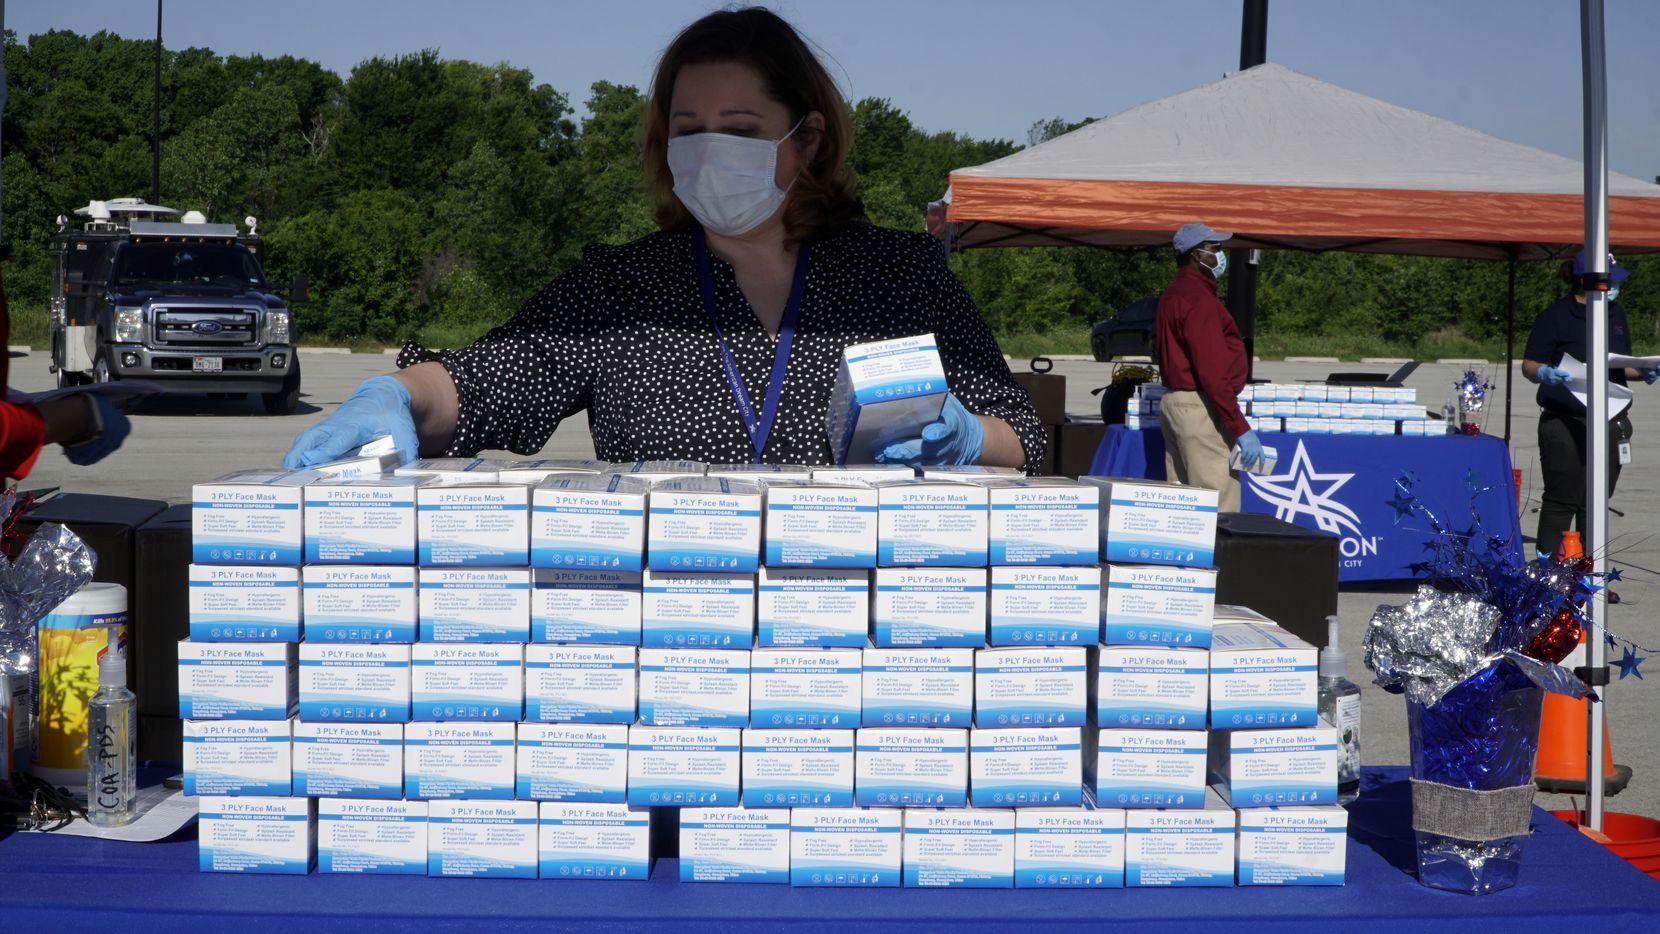 Susan Schrock keeps the supply flowing during a free mask giveaway in the parking lot at Globe Life Park in Arlington, Texas on Wednesday, May 6, 2020.  City of Arlington in partnership with Tarrant County, the Texas Rangers, Greater Arlington Chamber of Commerce, and Arlington Convention and Visitors Bureau provided protective masks for free to employees at Arlington businesses and restaurants.